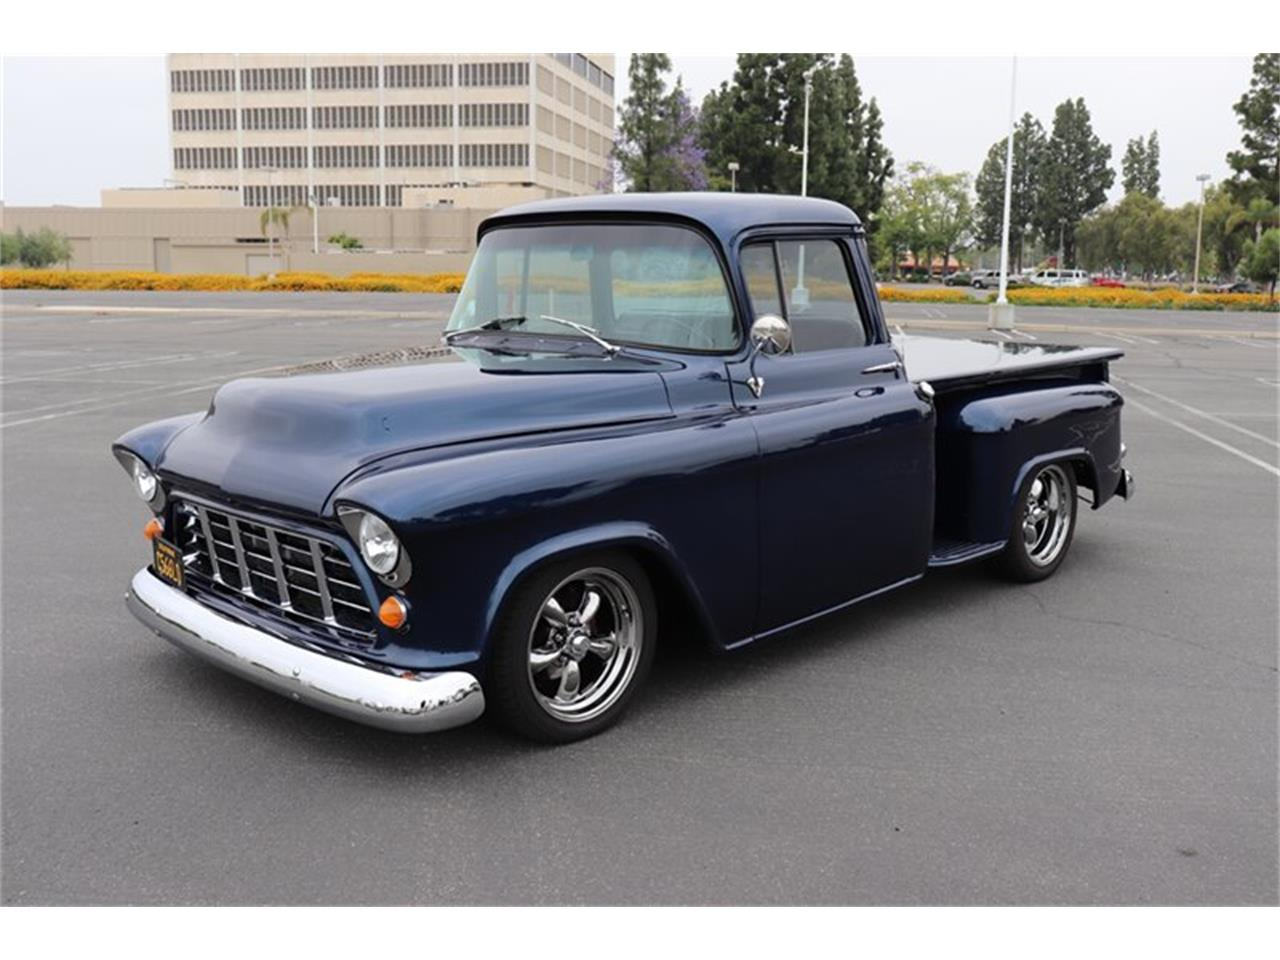 For Sale: 1955 Chevrolet Pickup in Anaheim, California